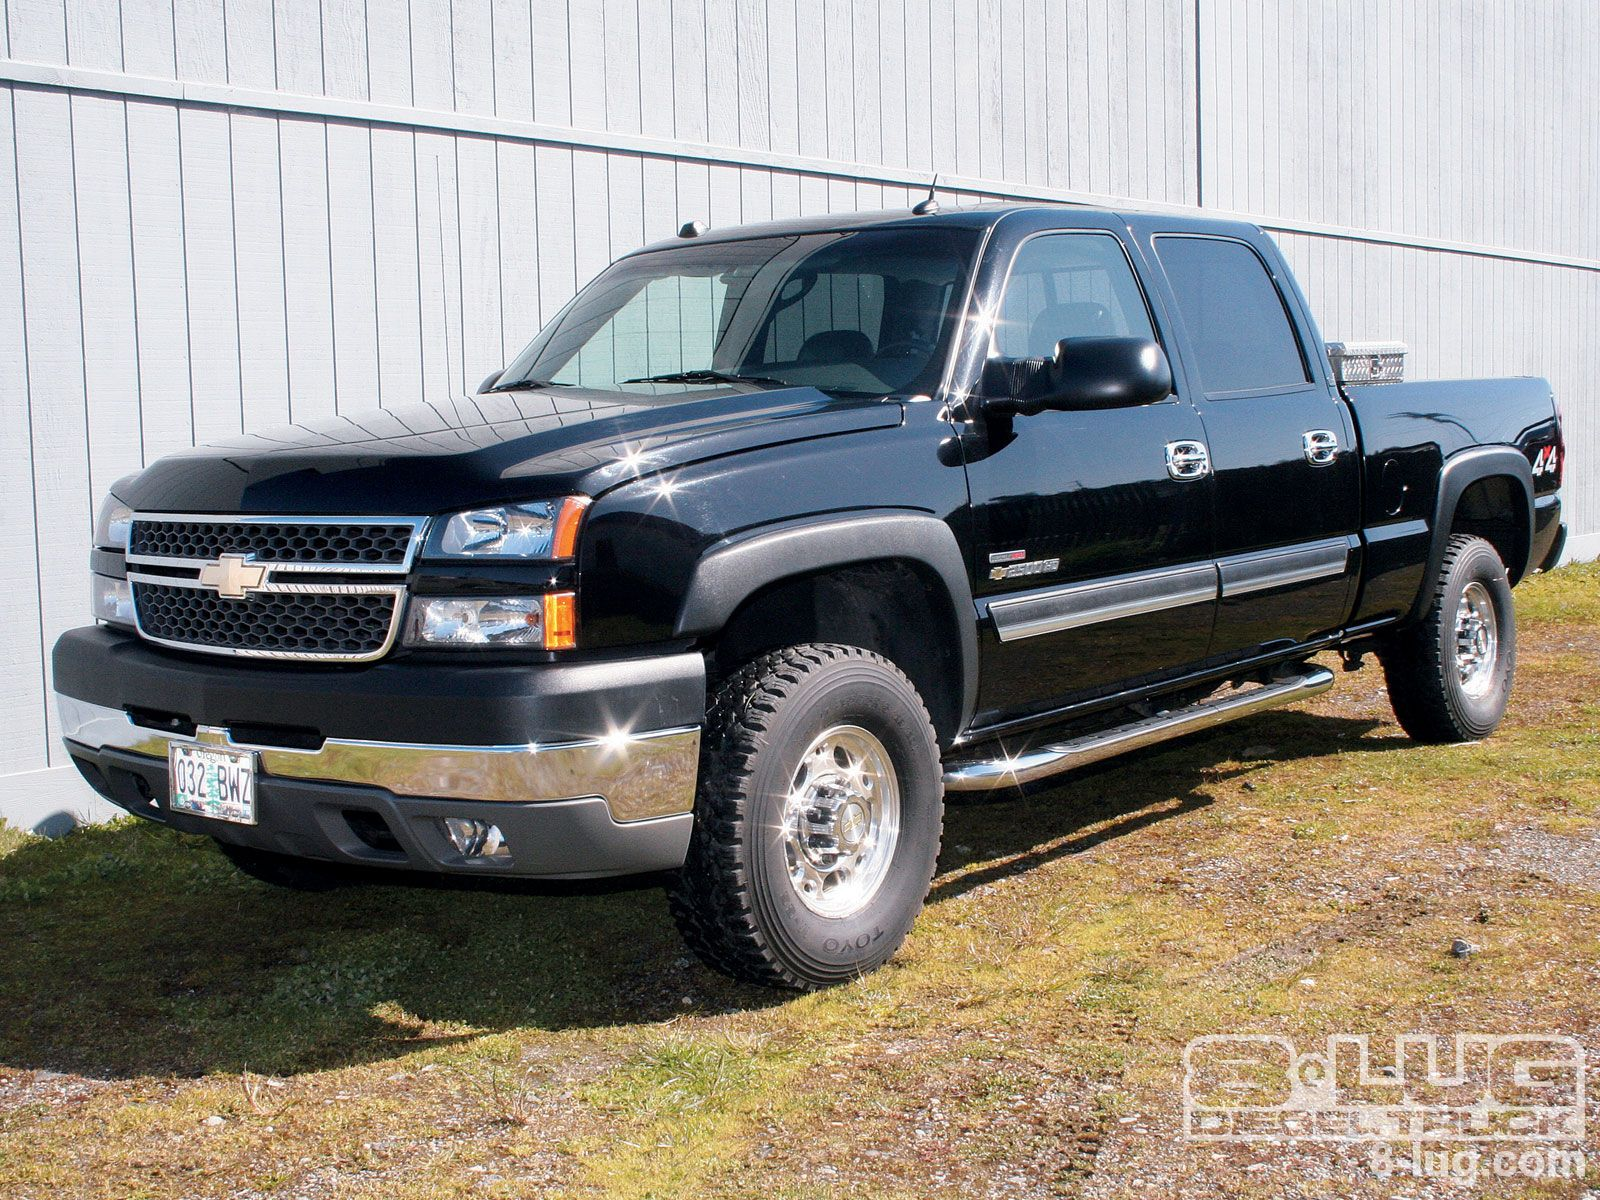 2005 chevy silverado crew cab z71 82 123 miles engine 5 3 liter v8 transmission 5 speed auto drive type 4wd mpg city hwy 15 19 stereo nav optio